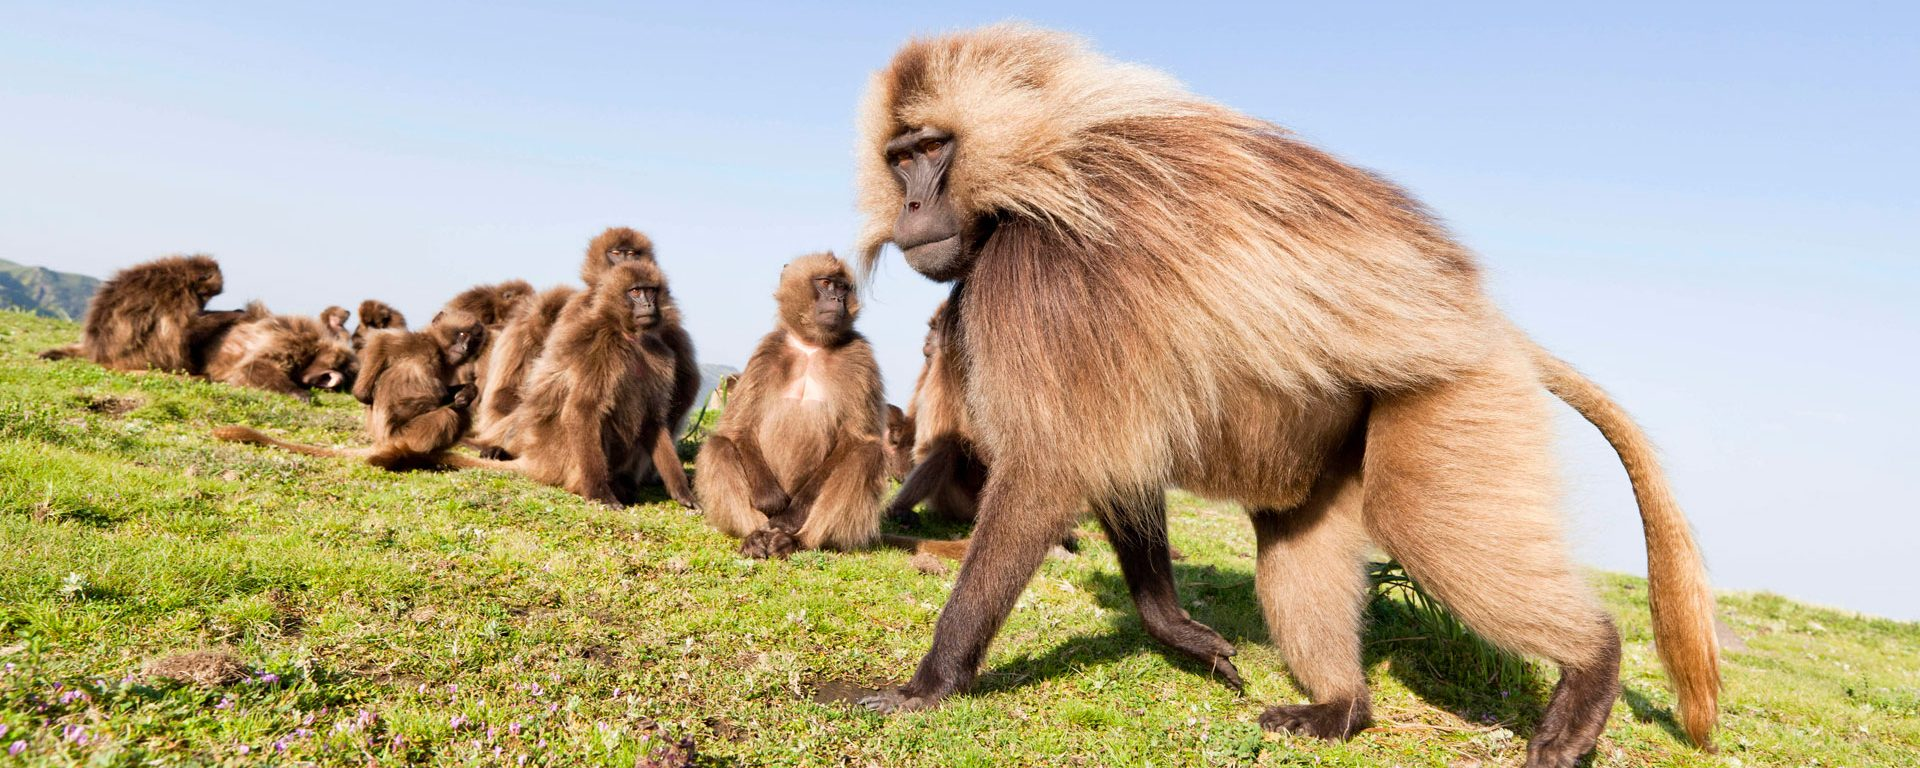 Gelada baboons in the Simien Mountains, Ethiopia